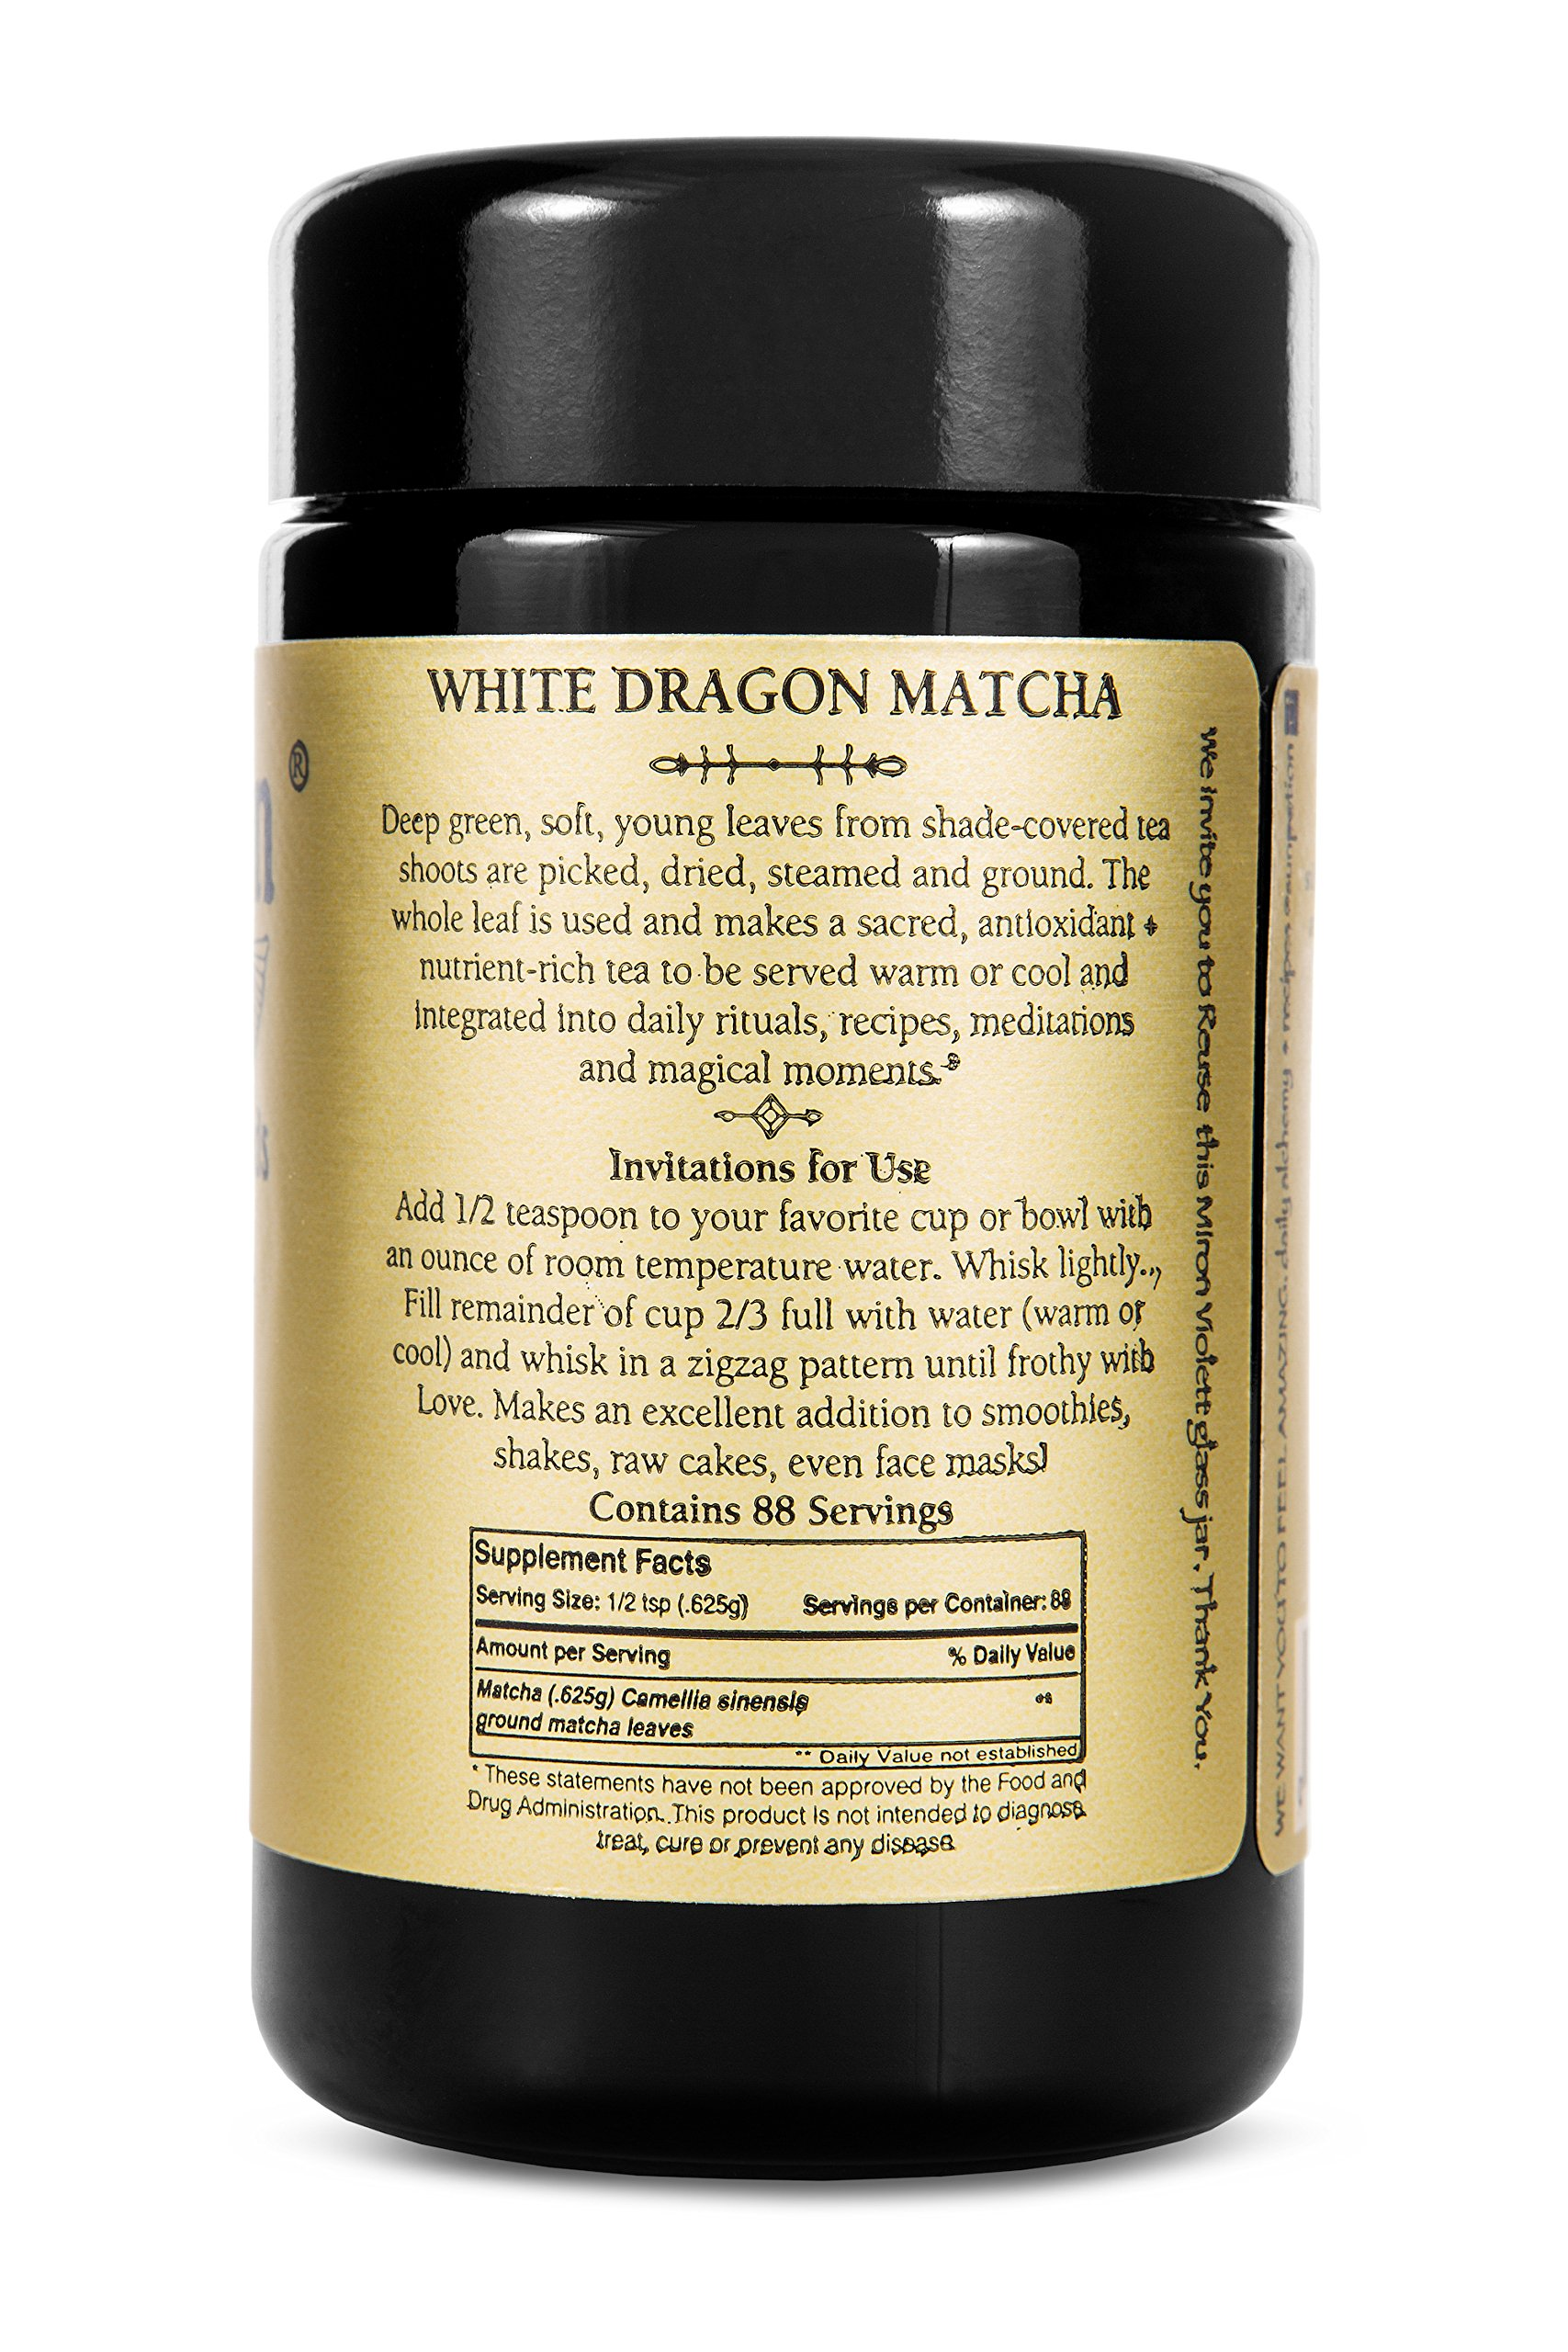 White Dragon Matcha Green Tea Powder 55g by Sun Potion - Boutique Style Organic Ceremonial Grade - Finest Exclusive and Highest Quality - Japanese Superfood - Antioxidant Energy Health Fat Burner